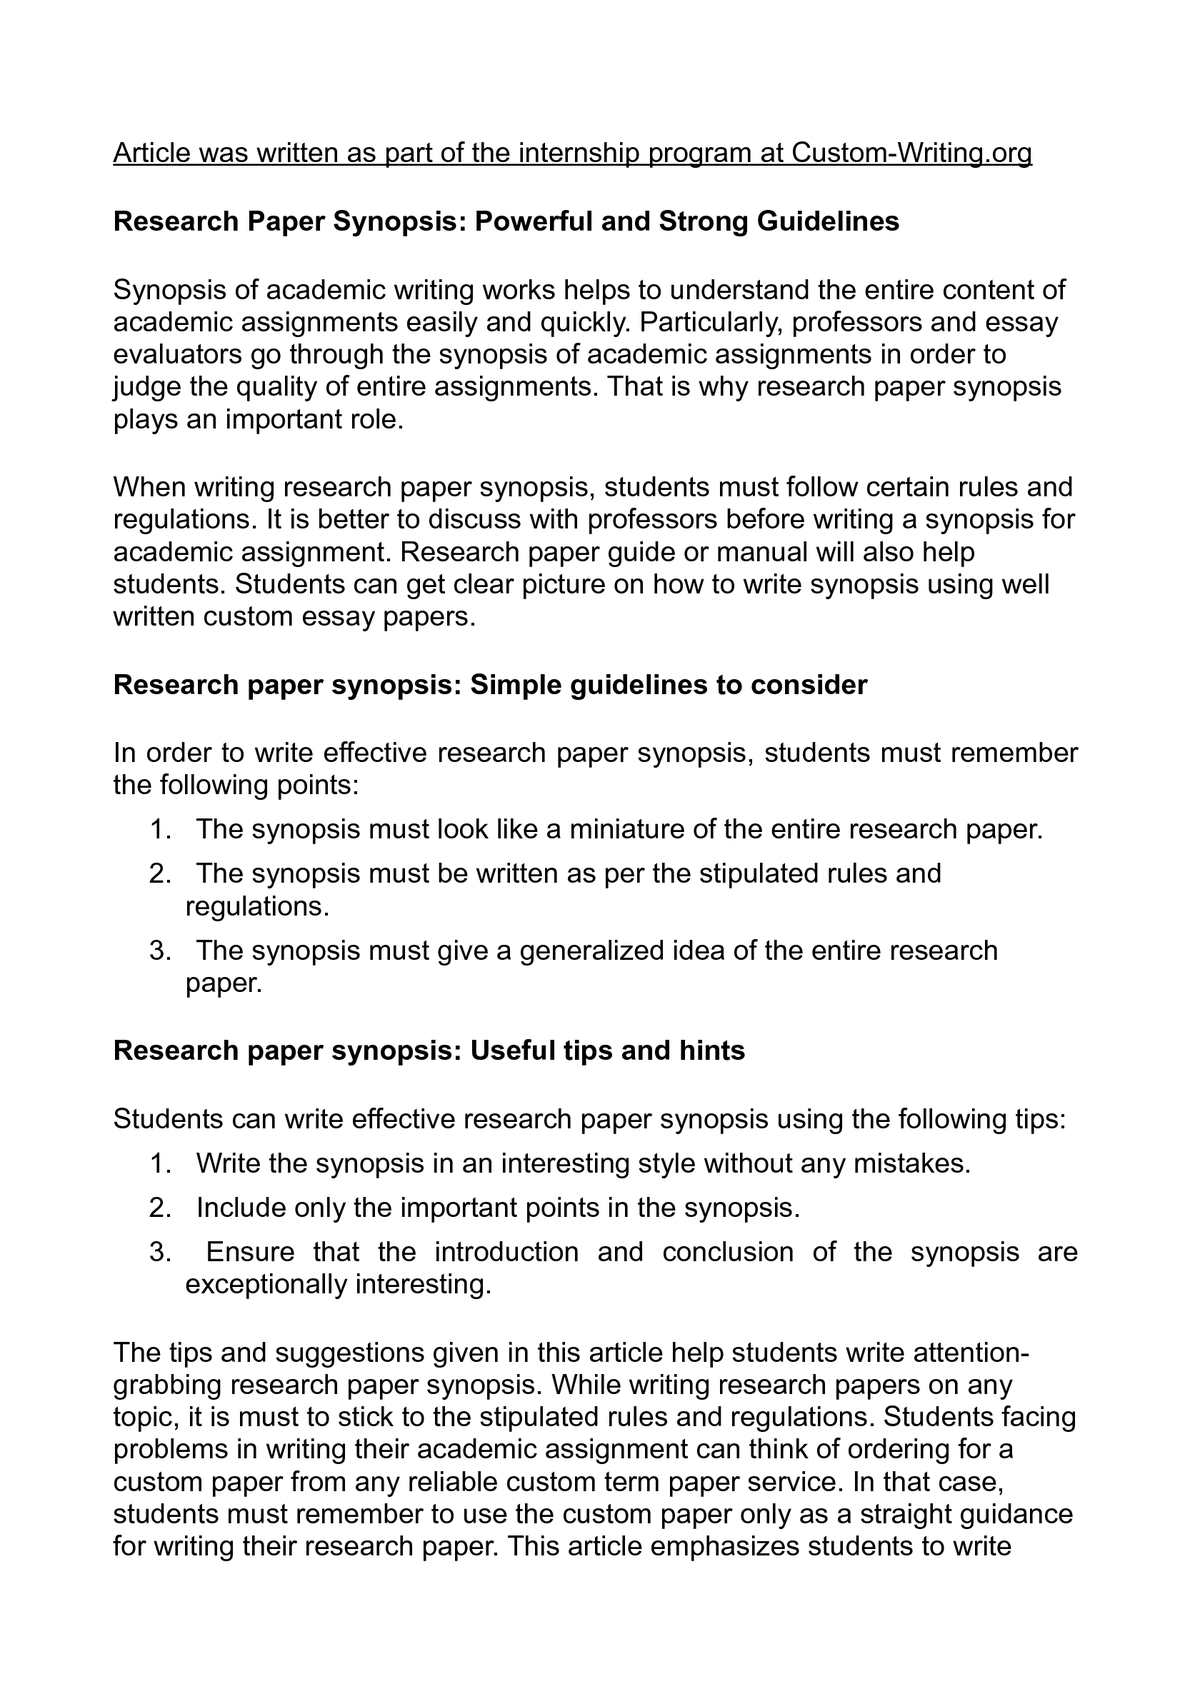 011 P1 Research Paper Order Of Wonderful A Reviews Making Full